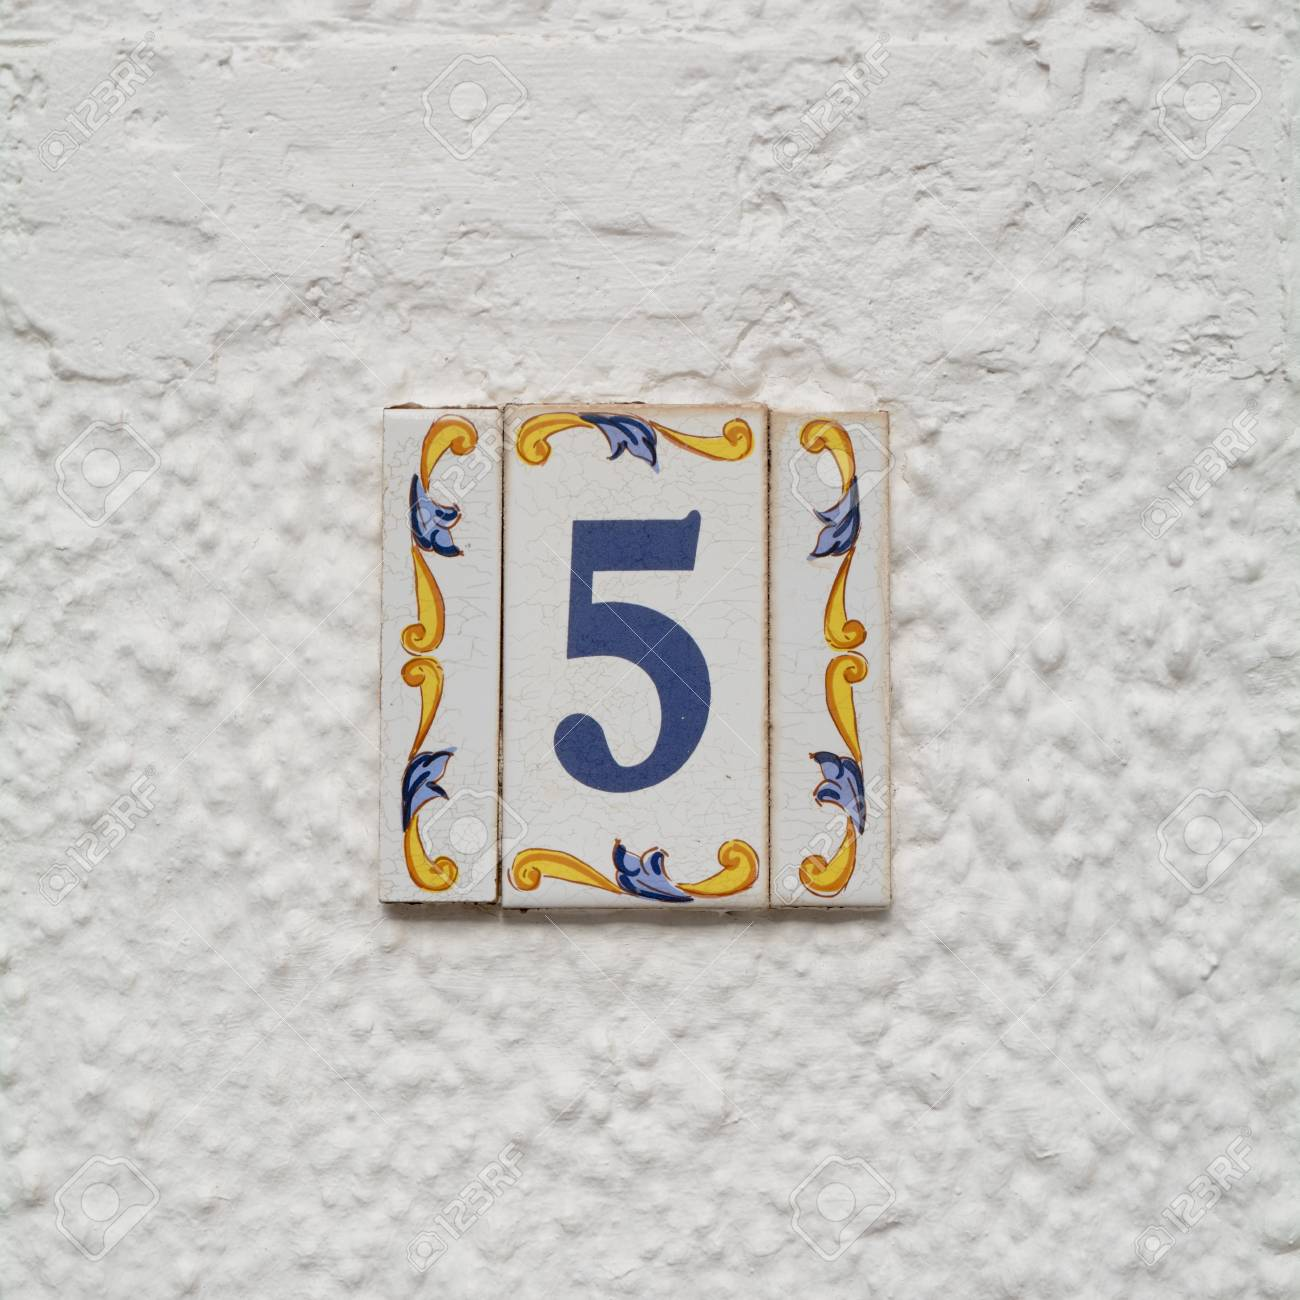 Image result for house number 5